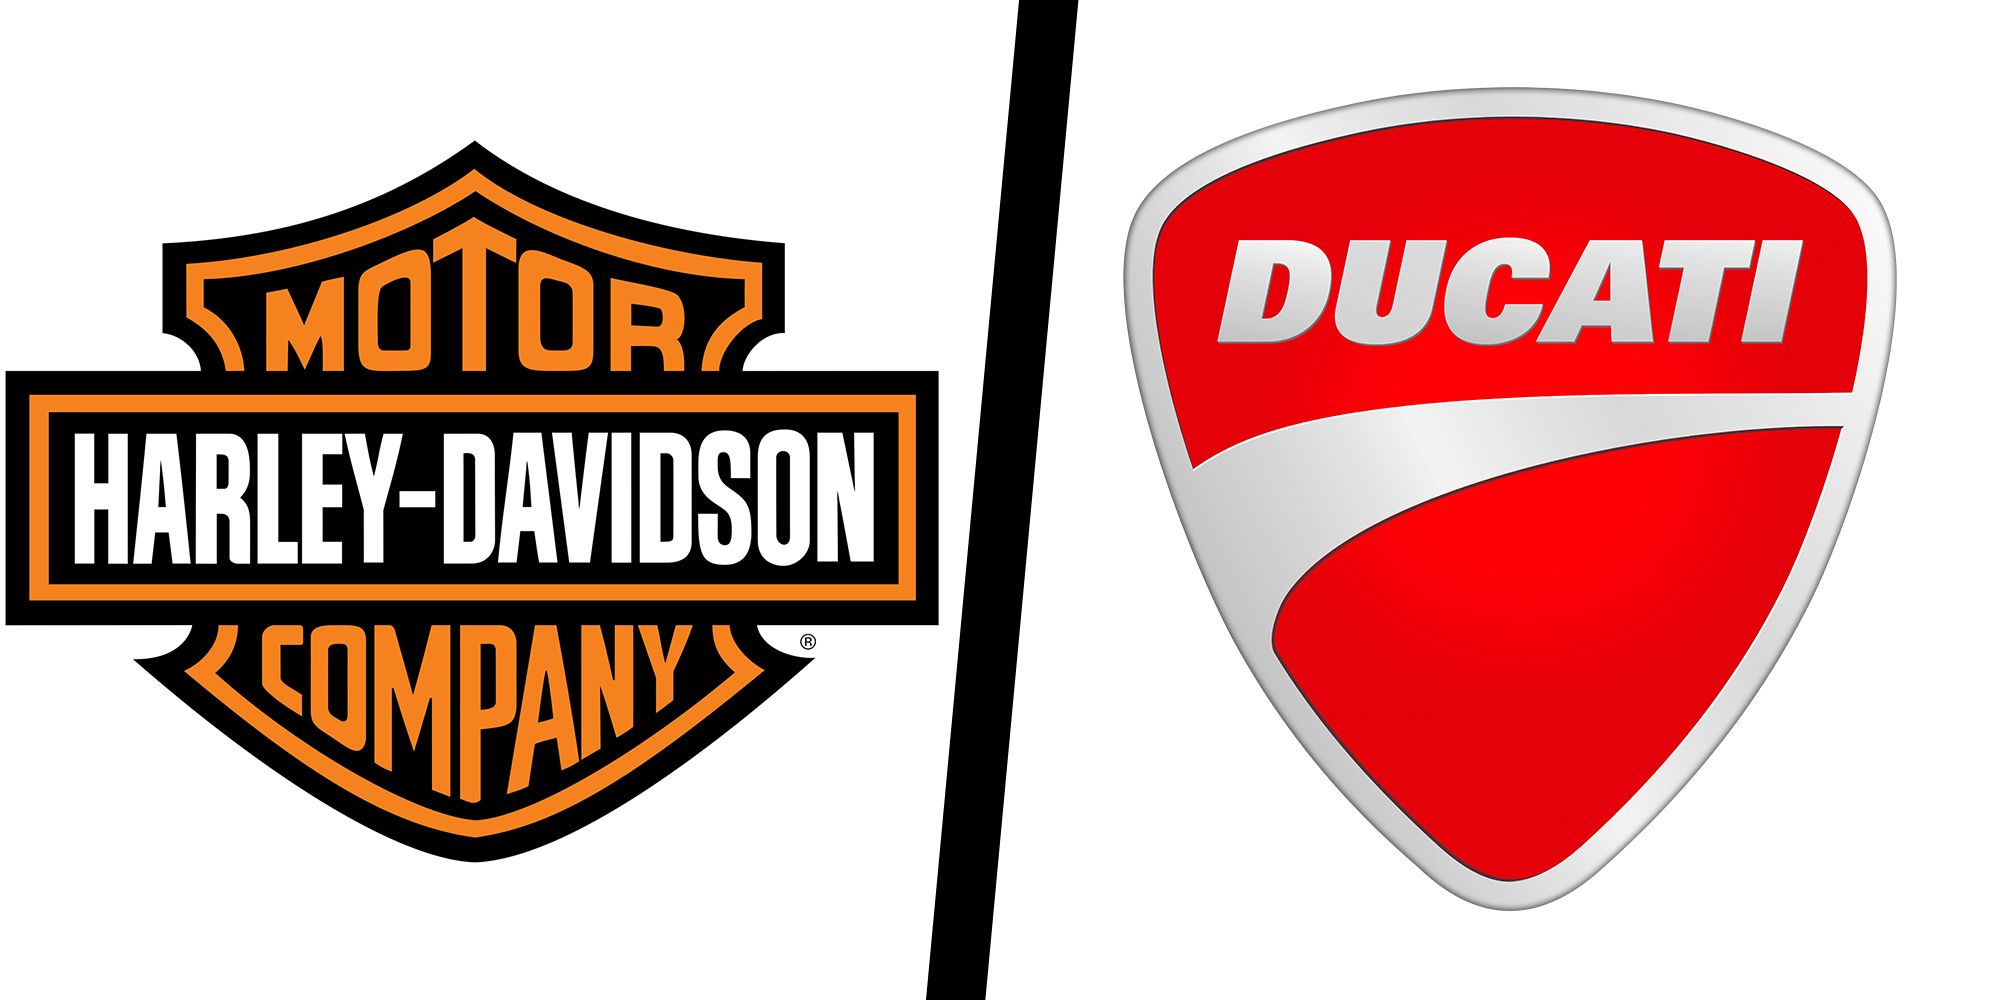 Harley Davidson Wants To Take Over Ducati Report